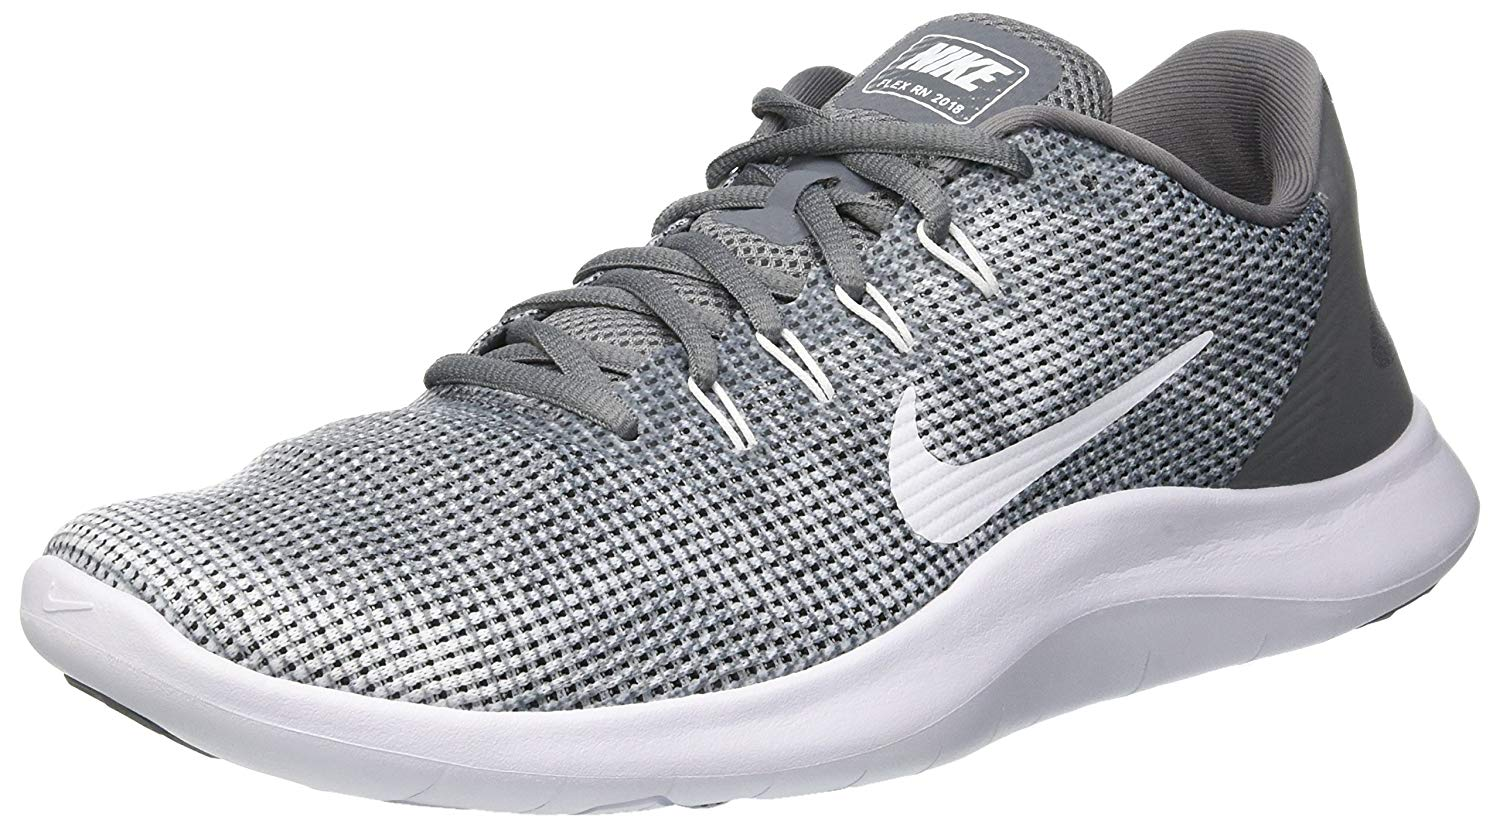 8b166c68e08 Nike Flex RN 2018 Reviewed for Performance in 2019